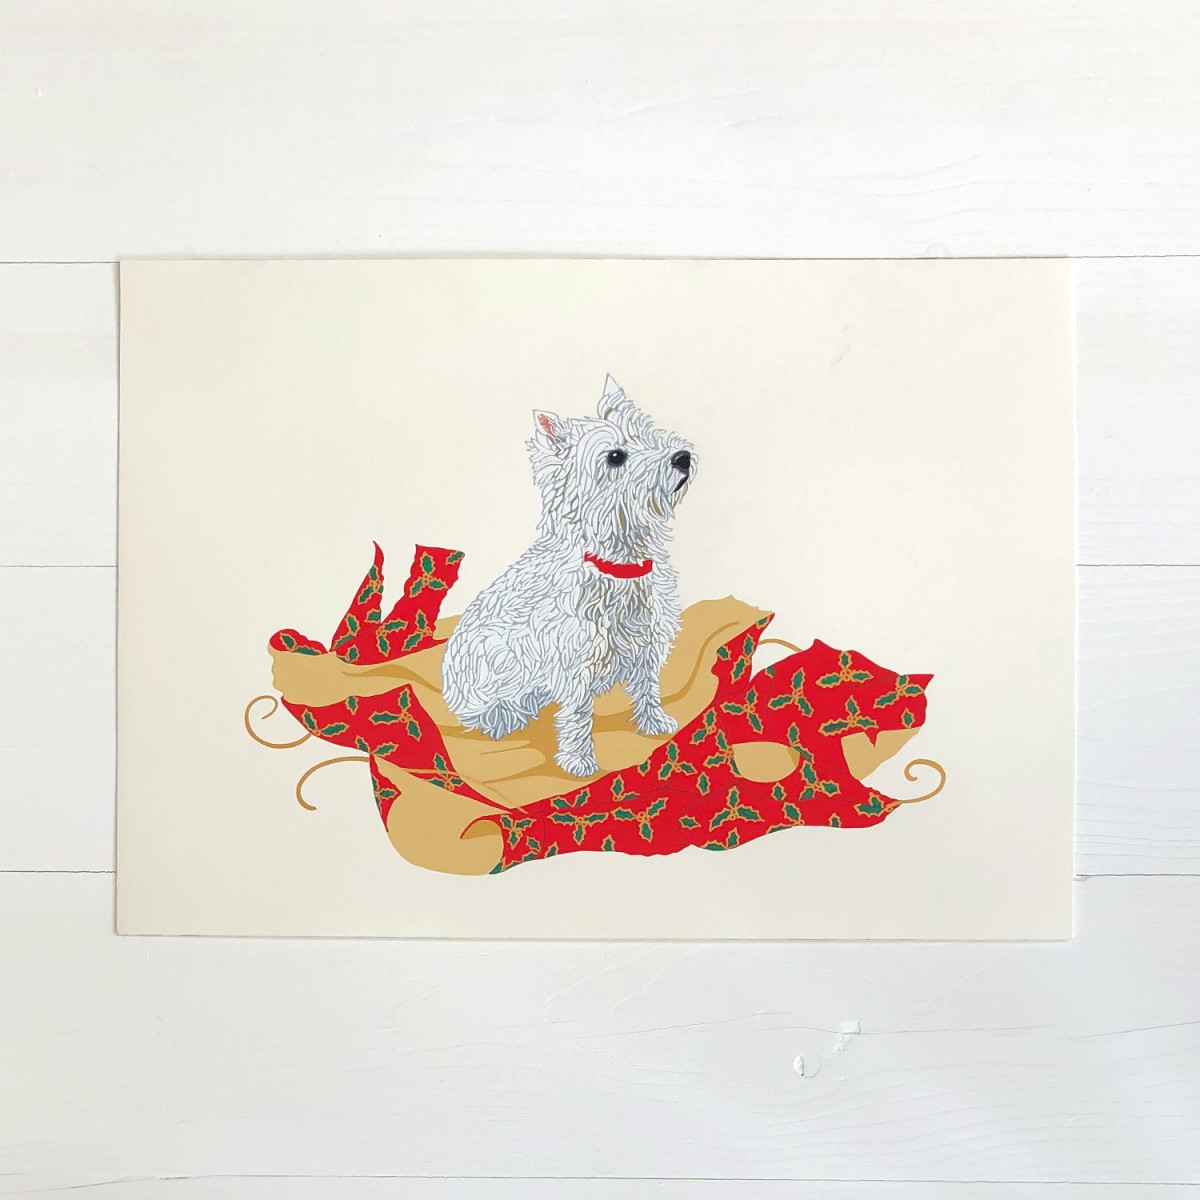 Christmas Westie West Highland Terrier Dog Original Gouache Painting By Bird